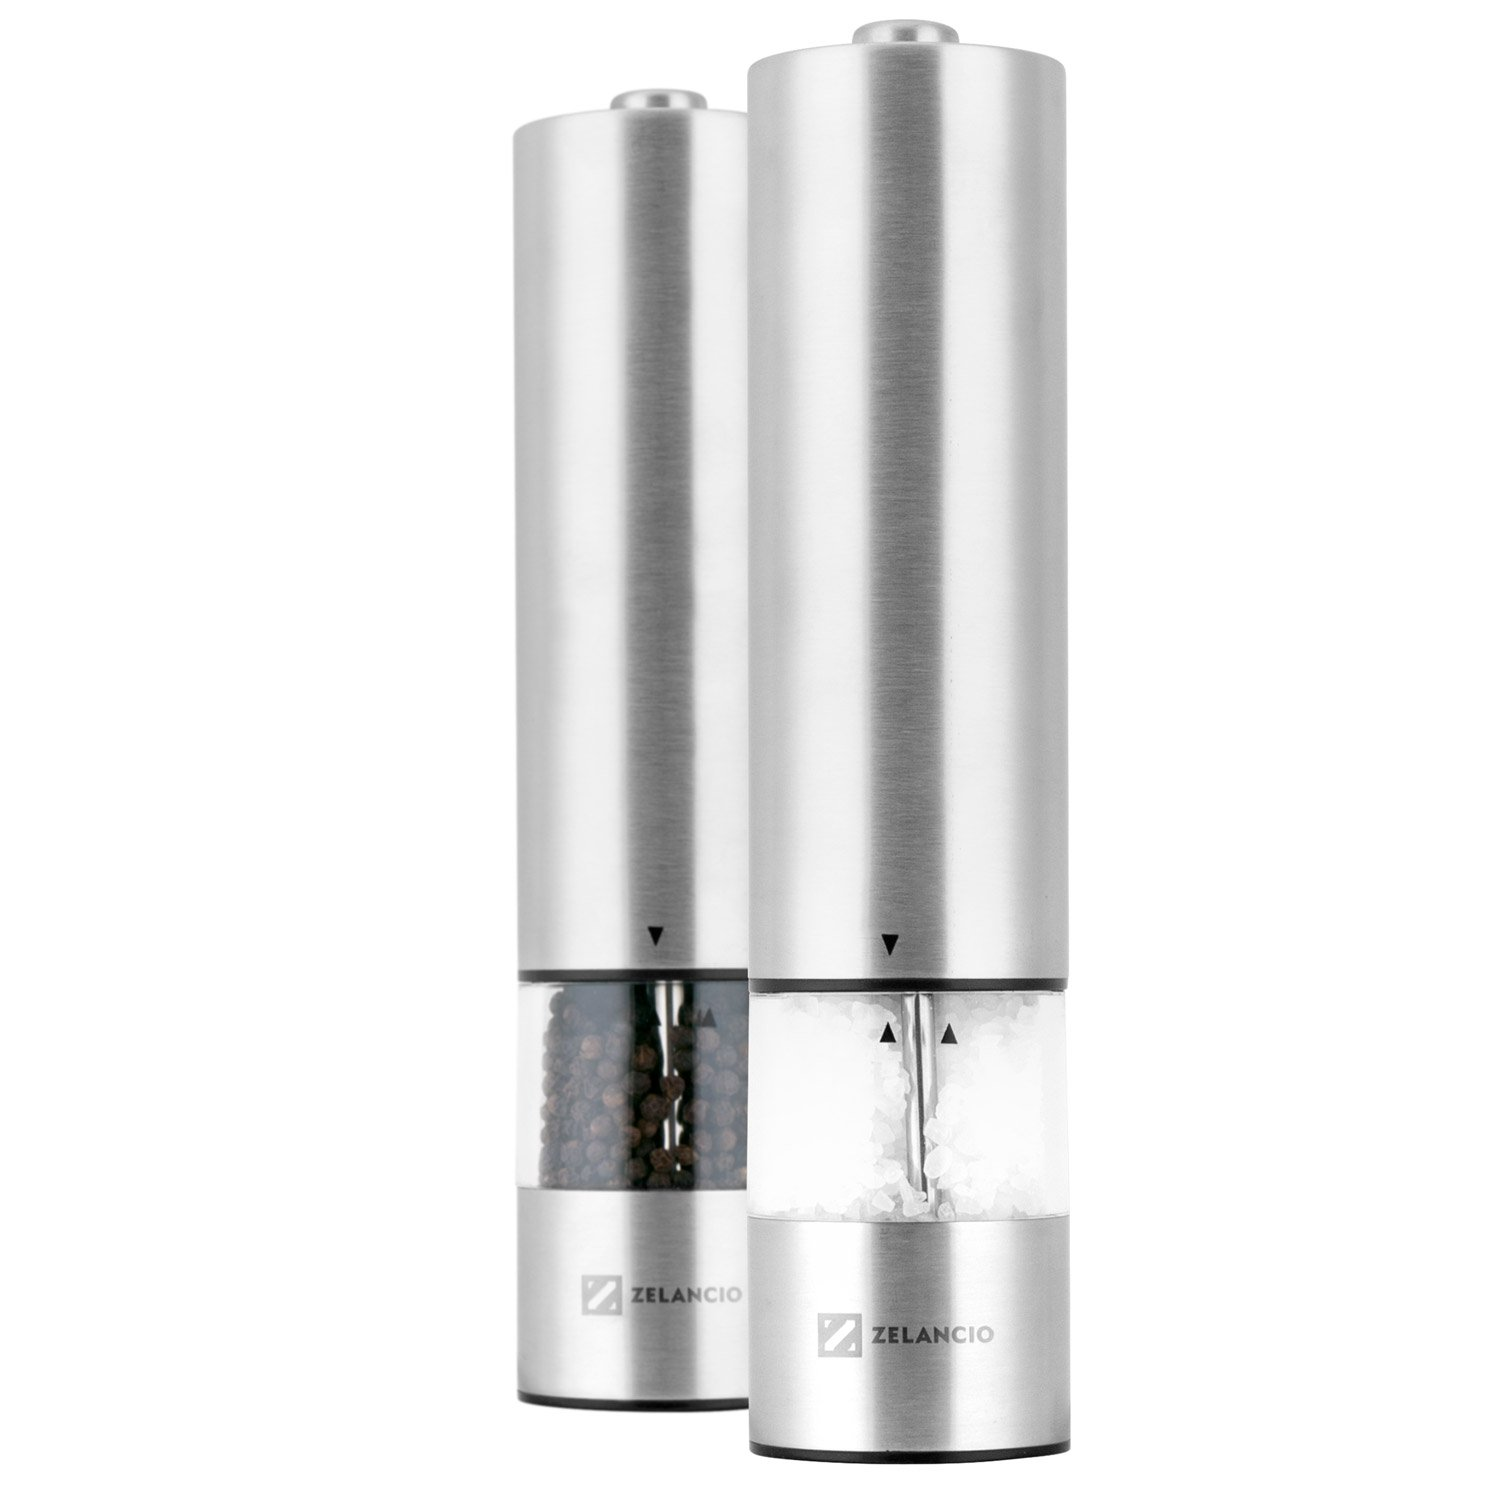 Zelancio Electric Salt and Pepper or Spice Grinder Set | Battery Powered One Touch Grind | Set of 2 Mills by Zelancio